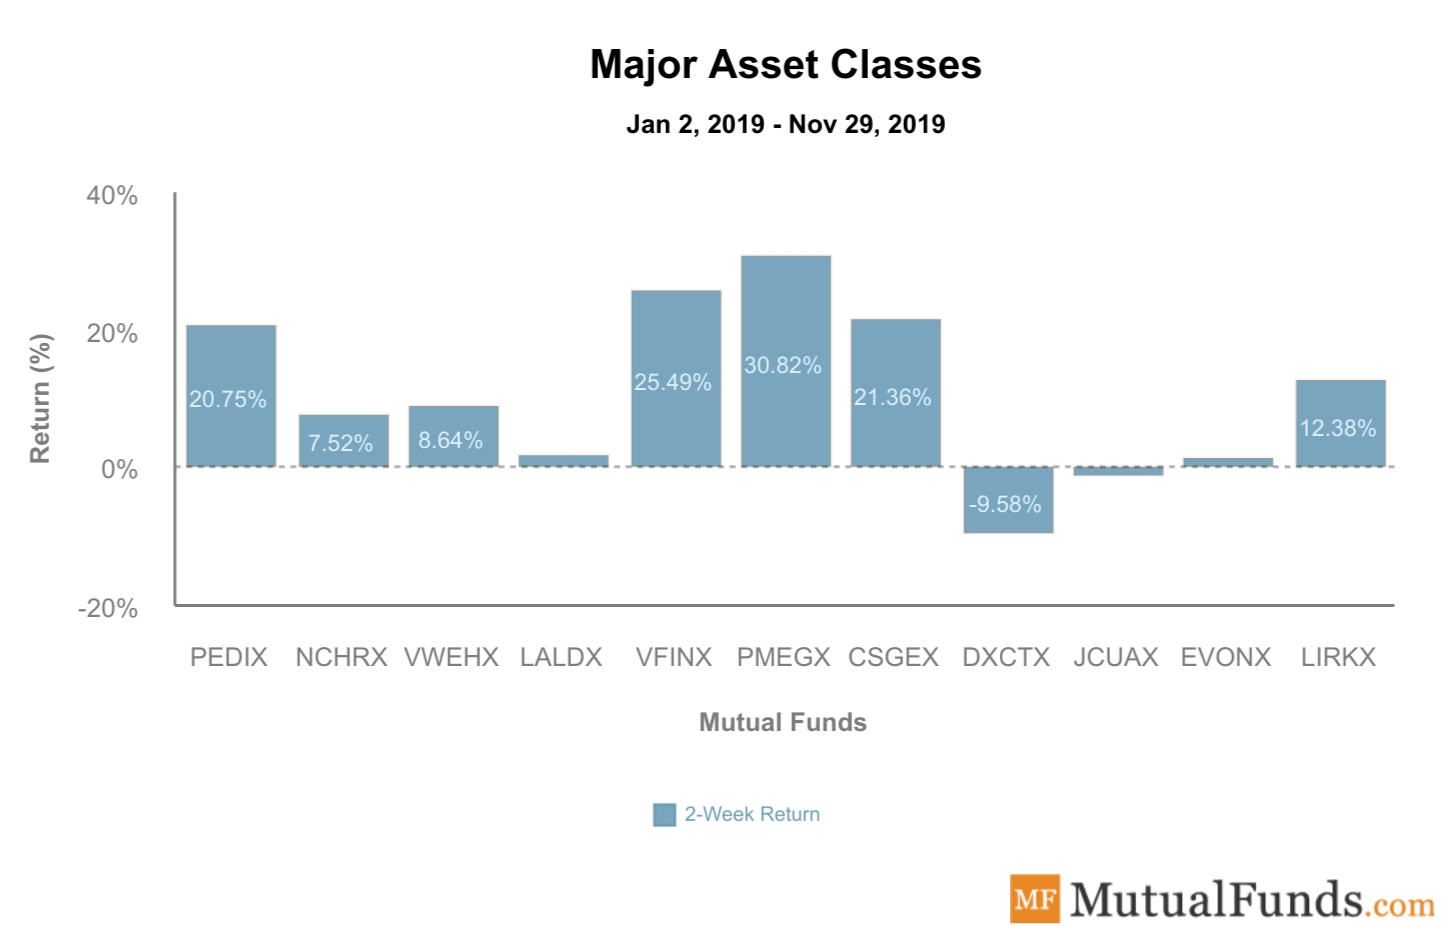 Major Asset Classes performance Dec 24, 2019